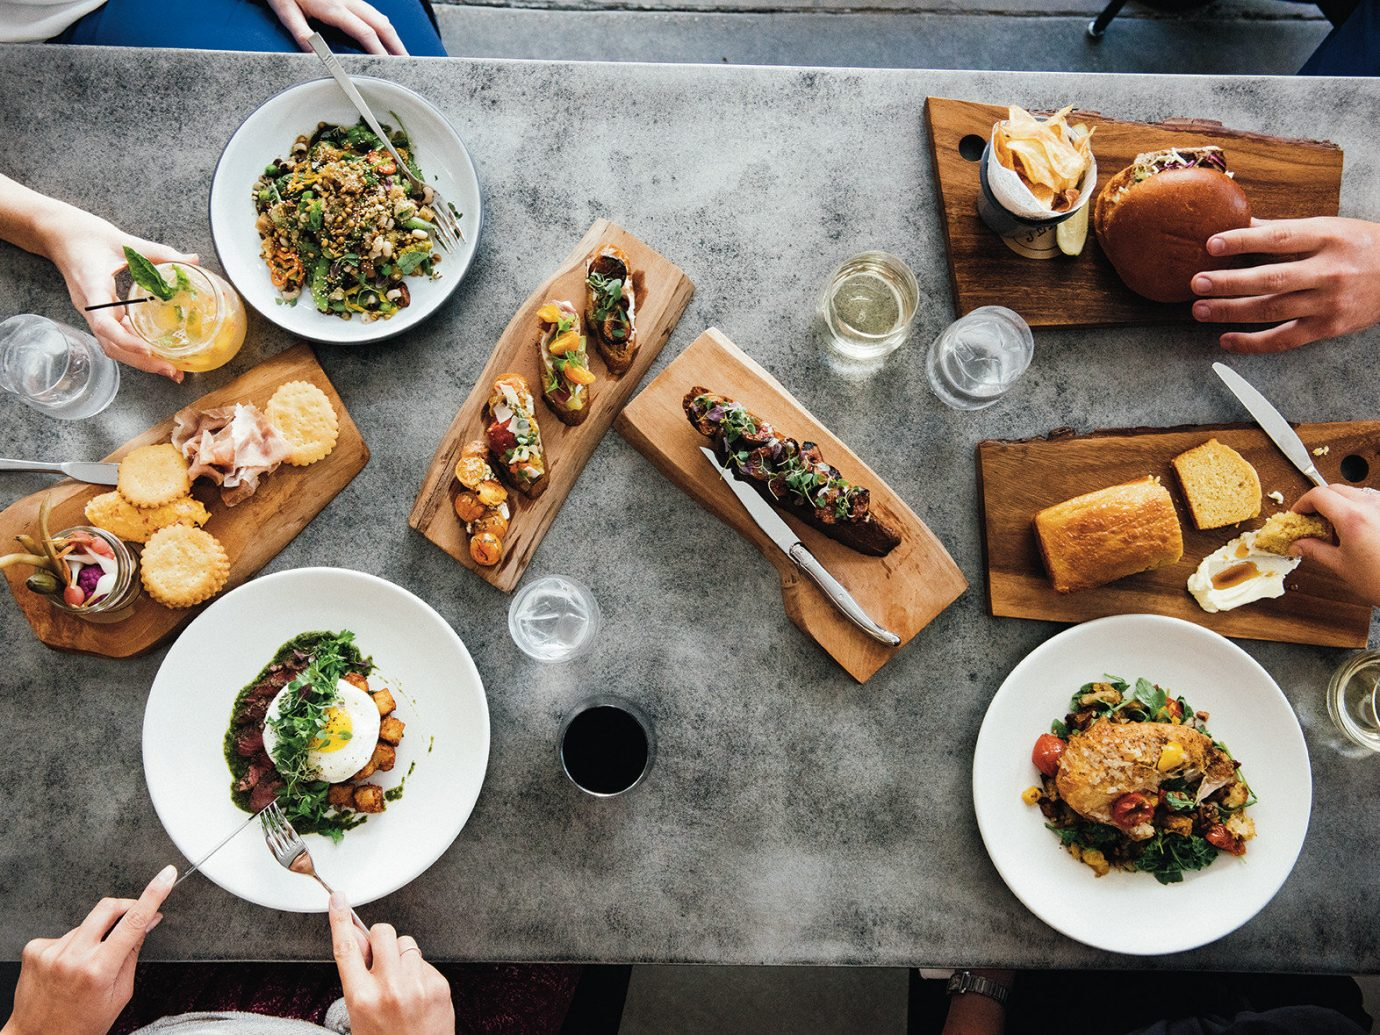 Girls Getaways Jetsetter Guides New Orleans Trip Ideas Weekend Getaways human action person dish different box food meal cooking cuisine meat sense produce baking lunch brunch bunch several toppings